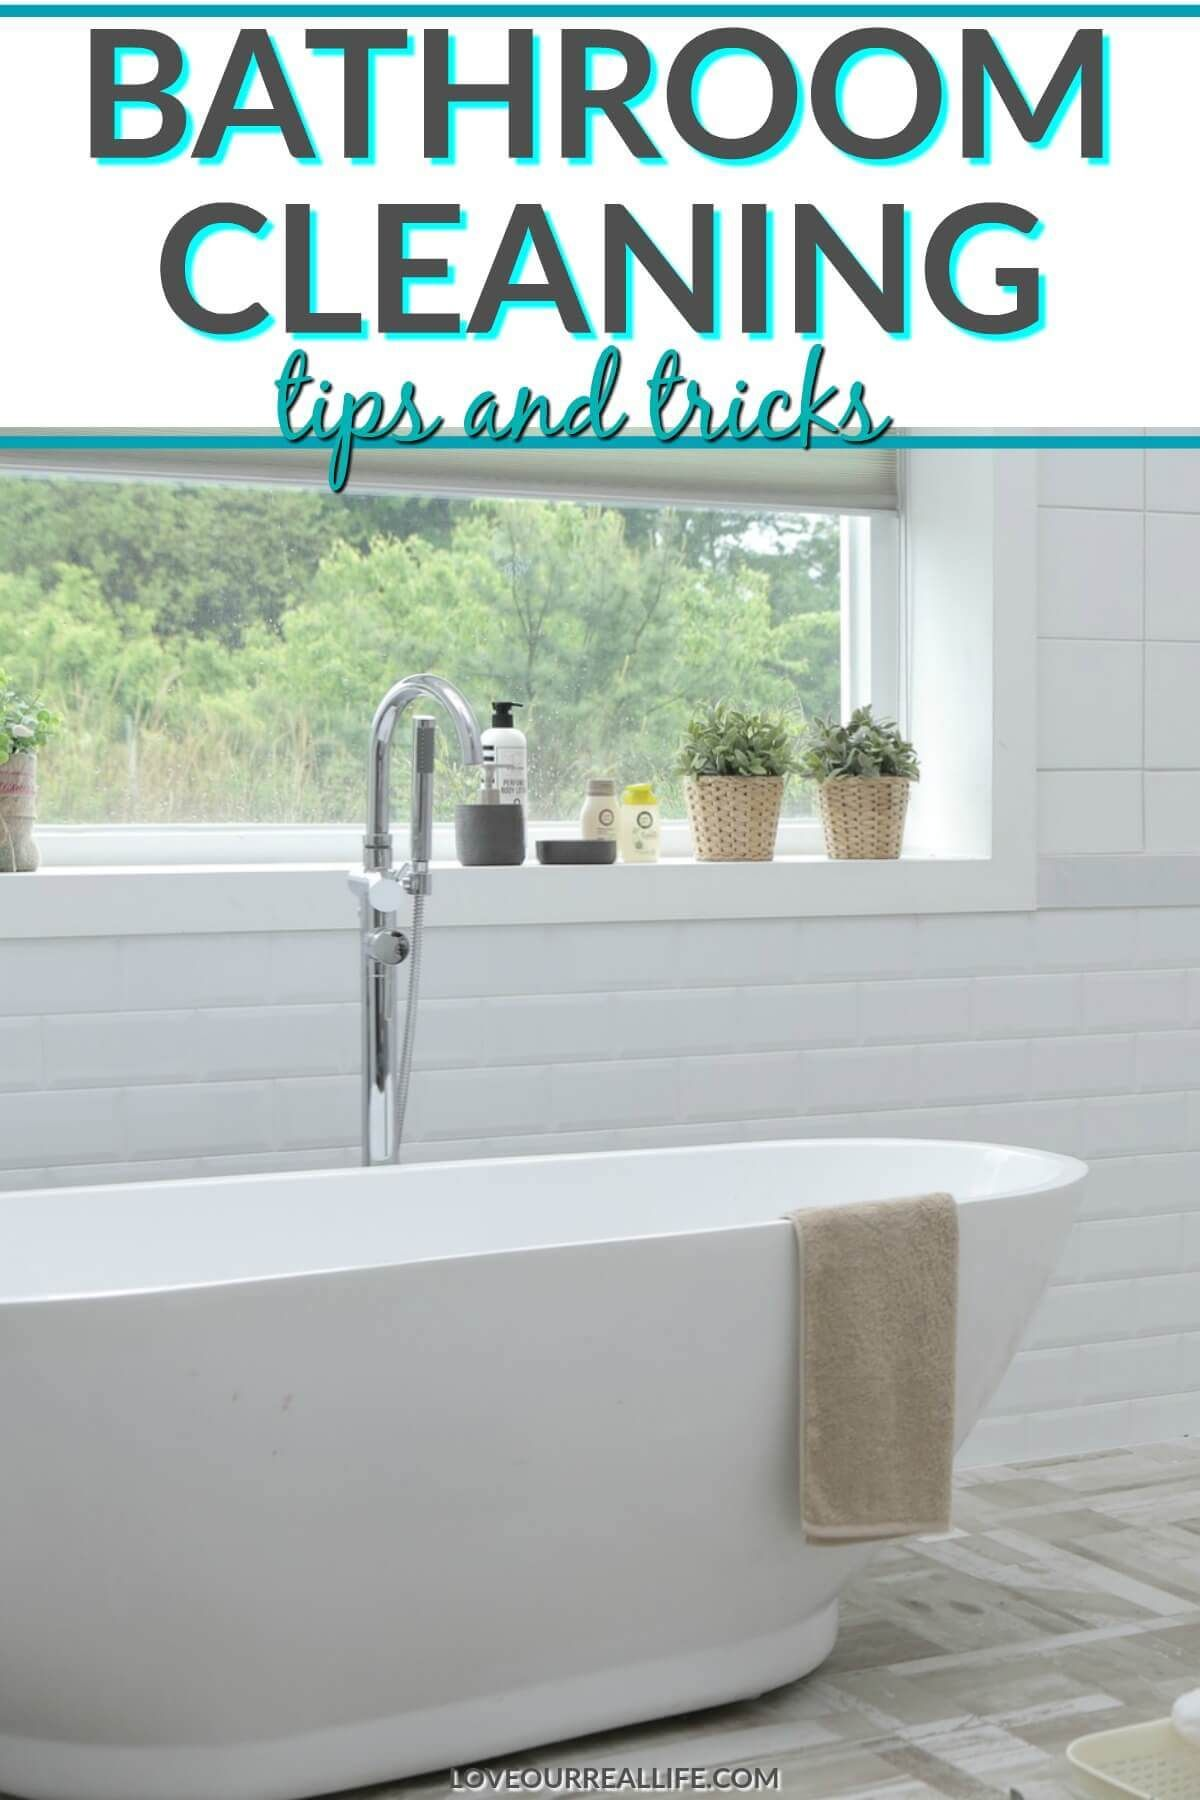 Bathroom Cleaning Tips For Every Day Love Our Real Life Bathroom Cleaning Hacks Bathroom Cleaning Cleaning Hacks